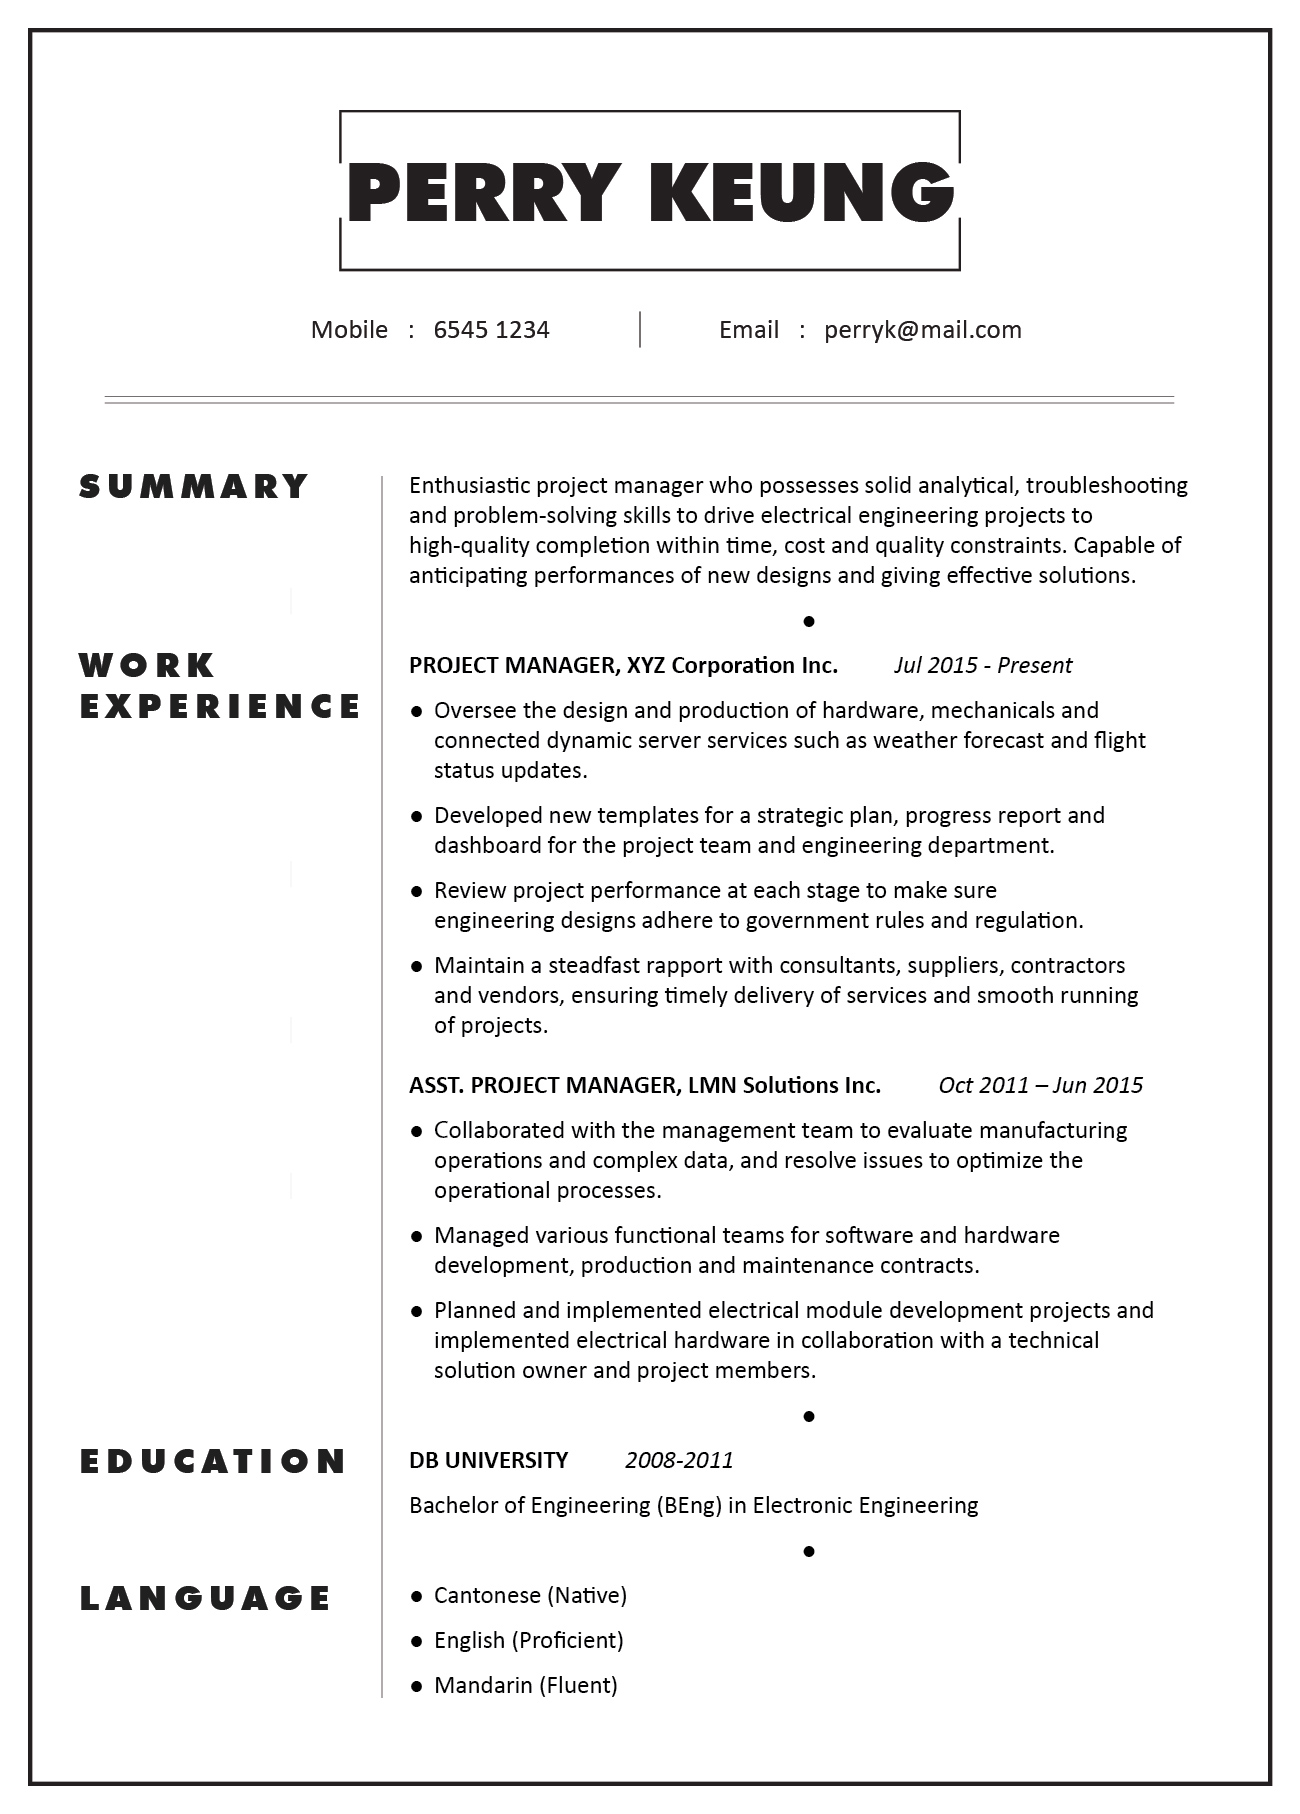 Fire Alarm Project Manager Resume | Fire Alarm Technician Cover ...